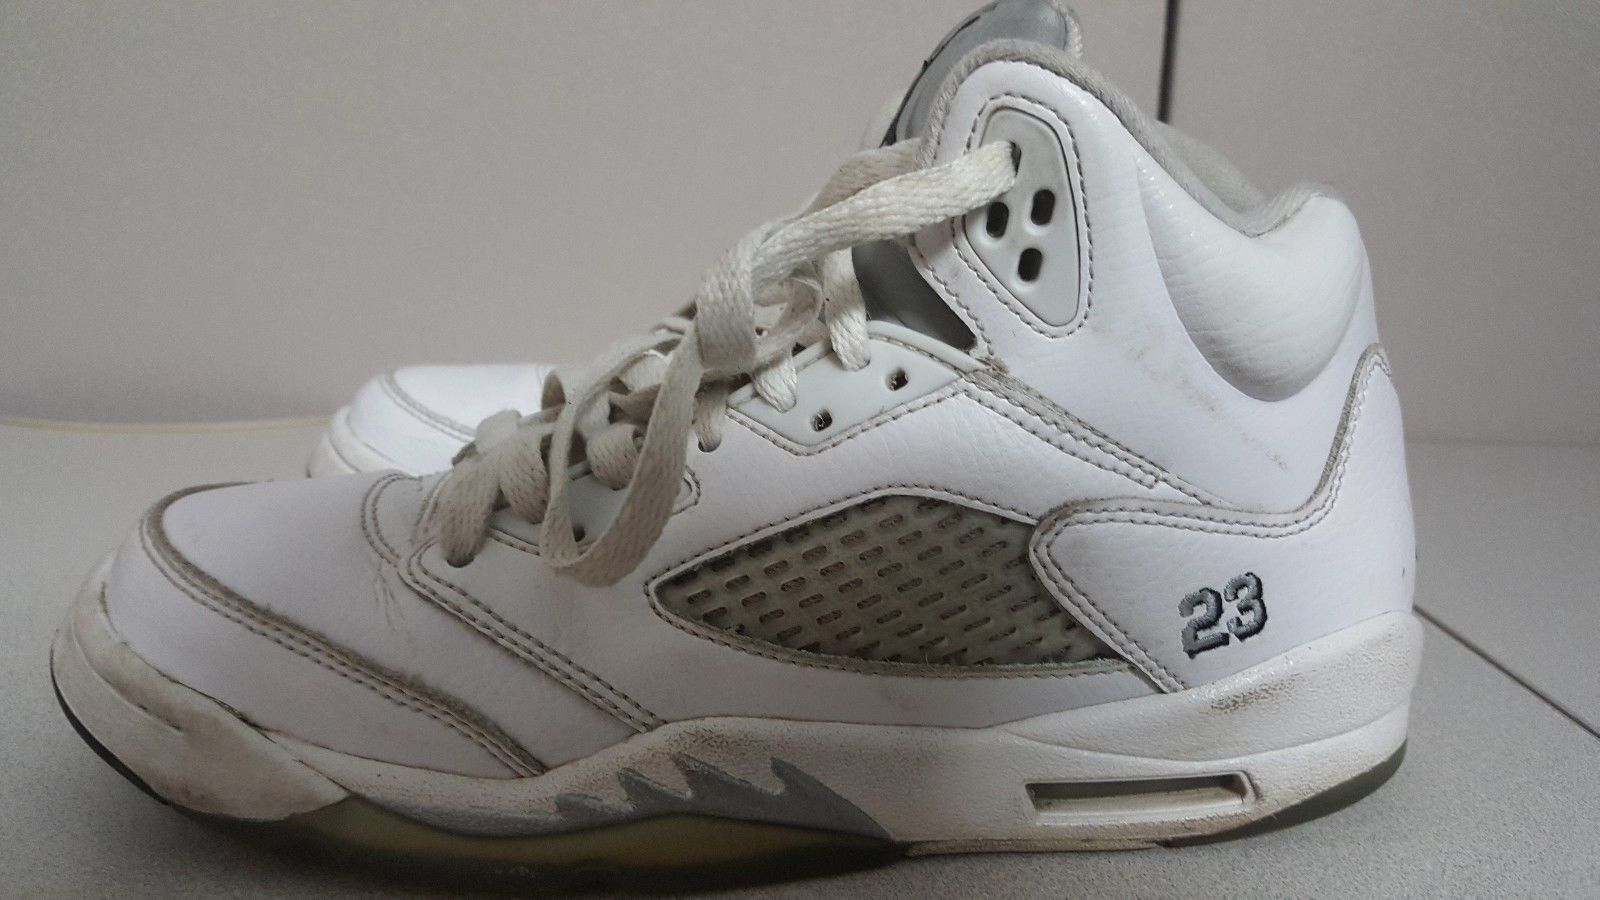 c13a30e55c5b AIR JORDAN 5 V Retro BG White Basketball Shoe Pre Owned Size 5.5 440888-130